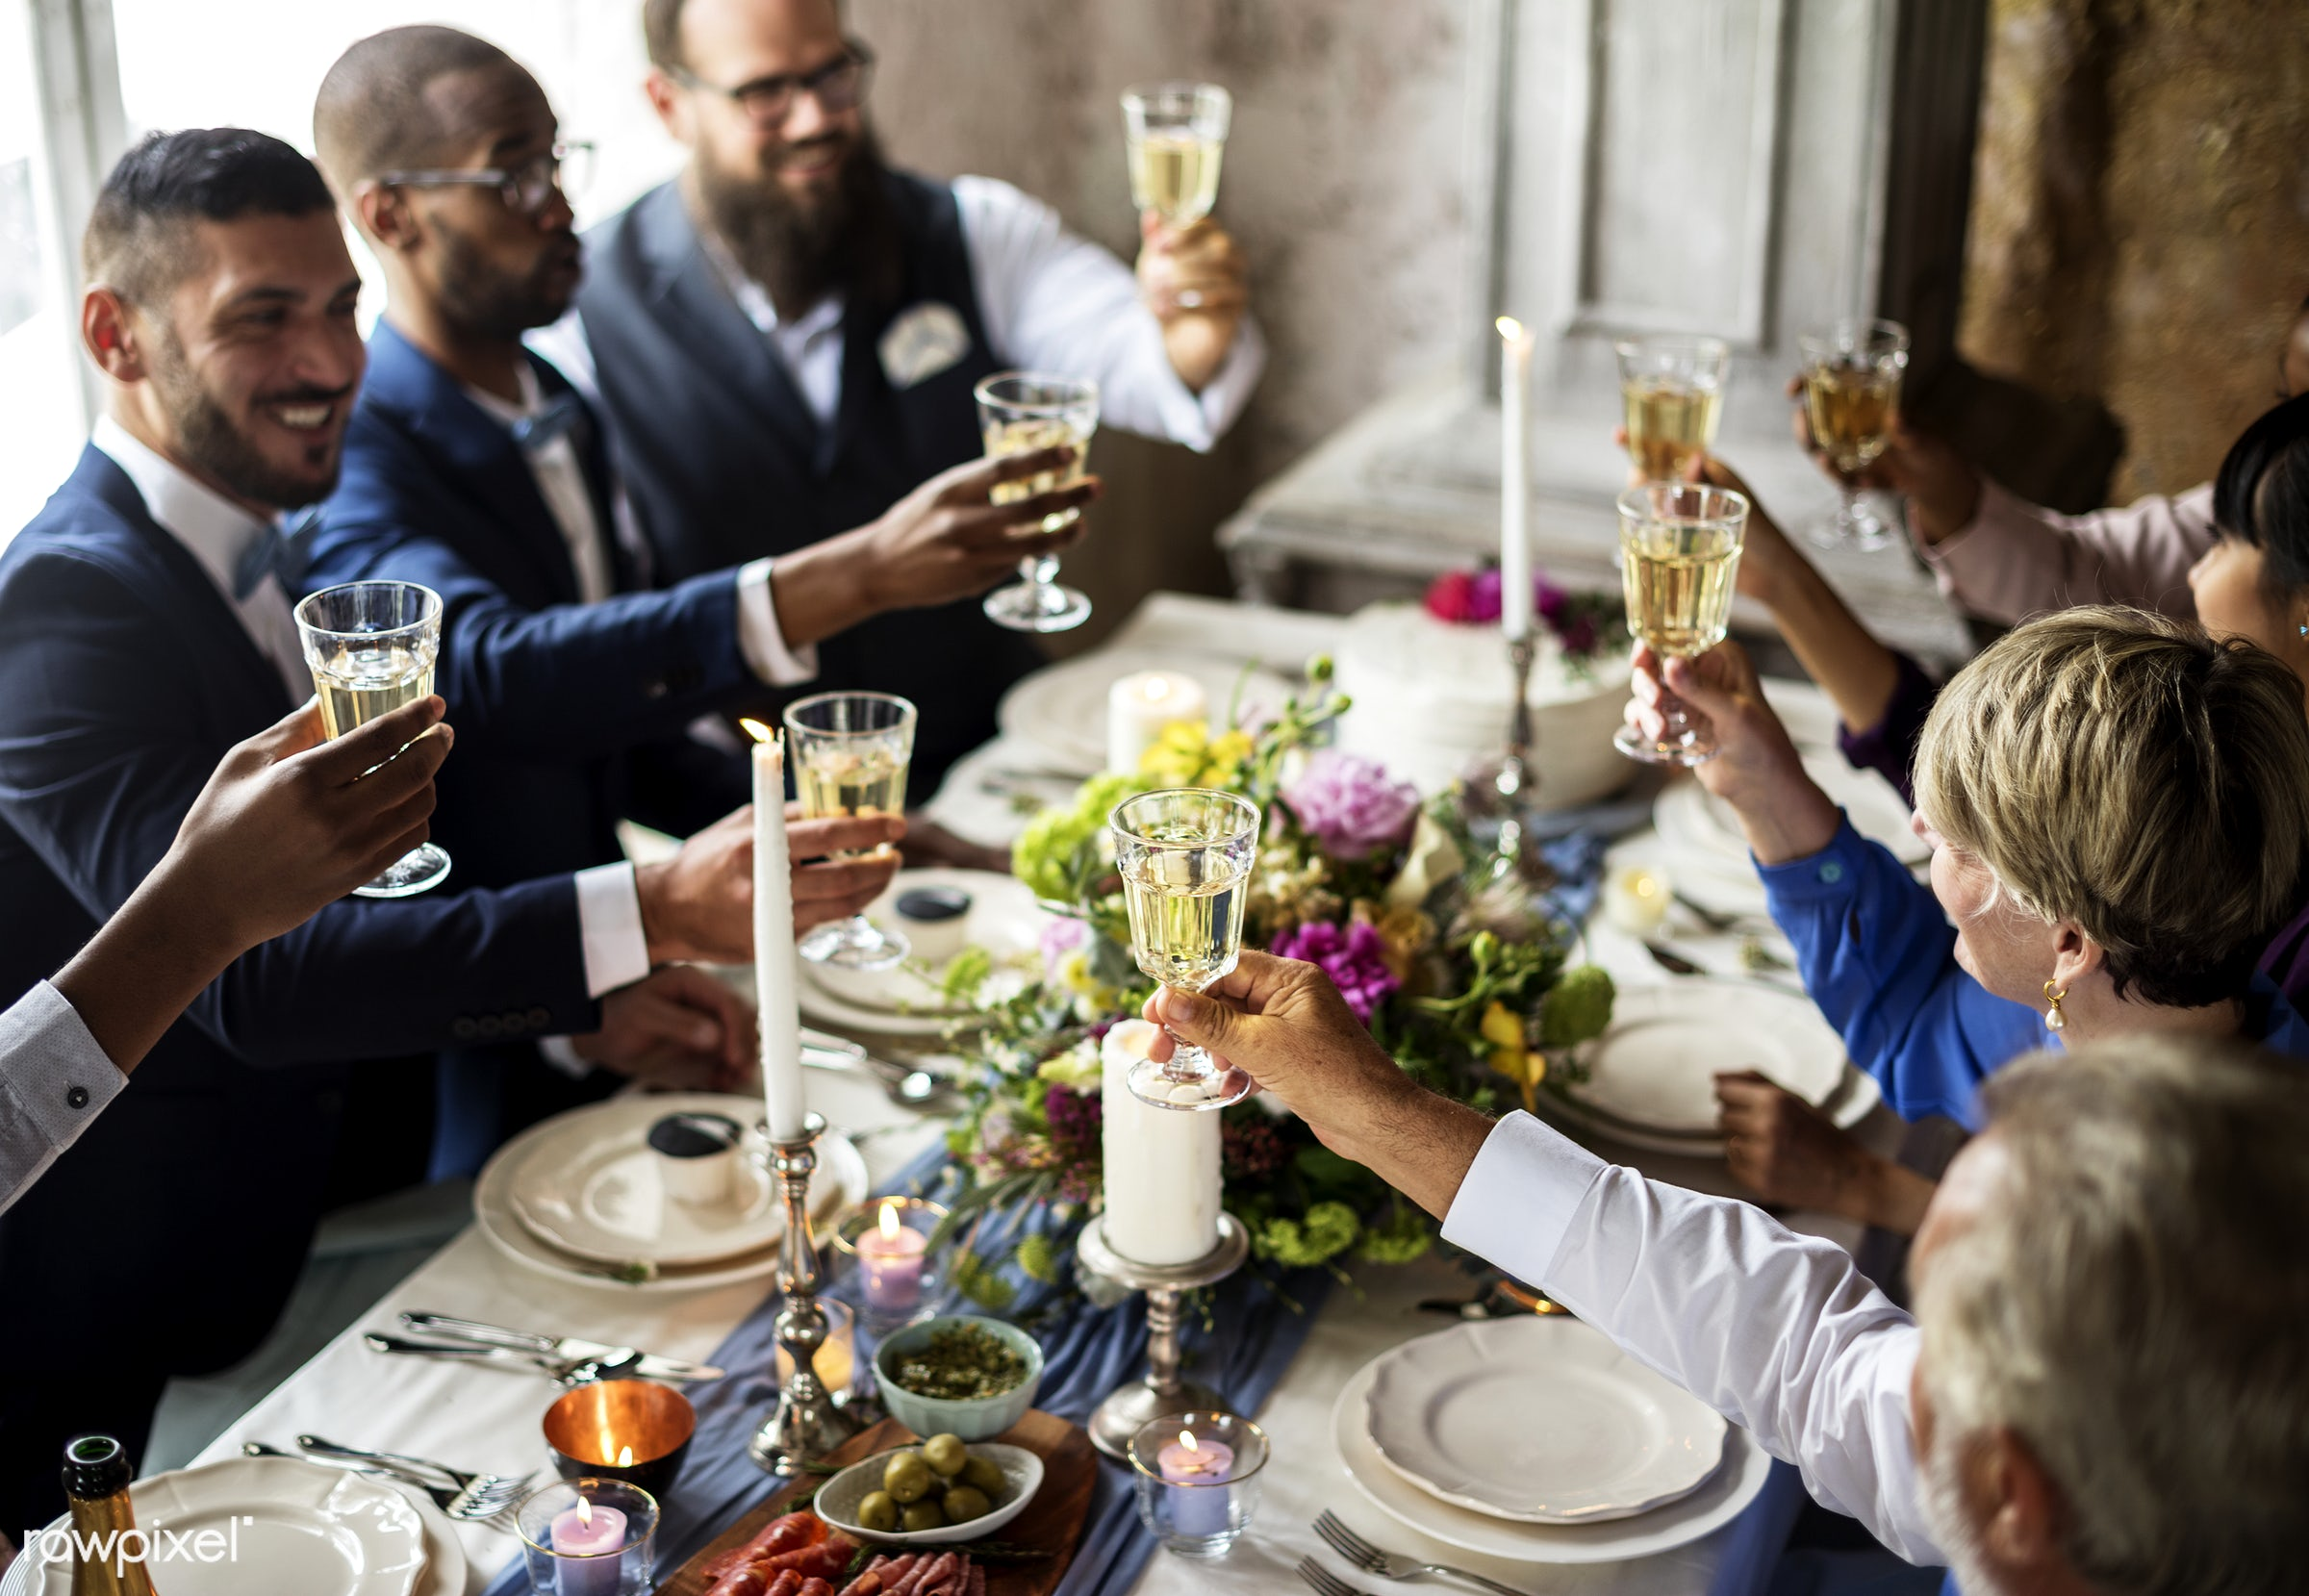 People holding their champagne glasses for a toast at a wedding table - alcohol, celebration, champagne, cheerful, cheers,...